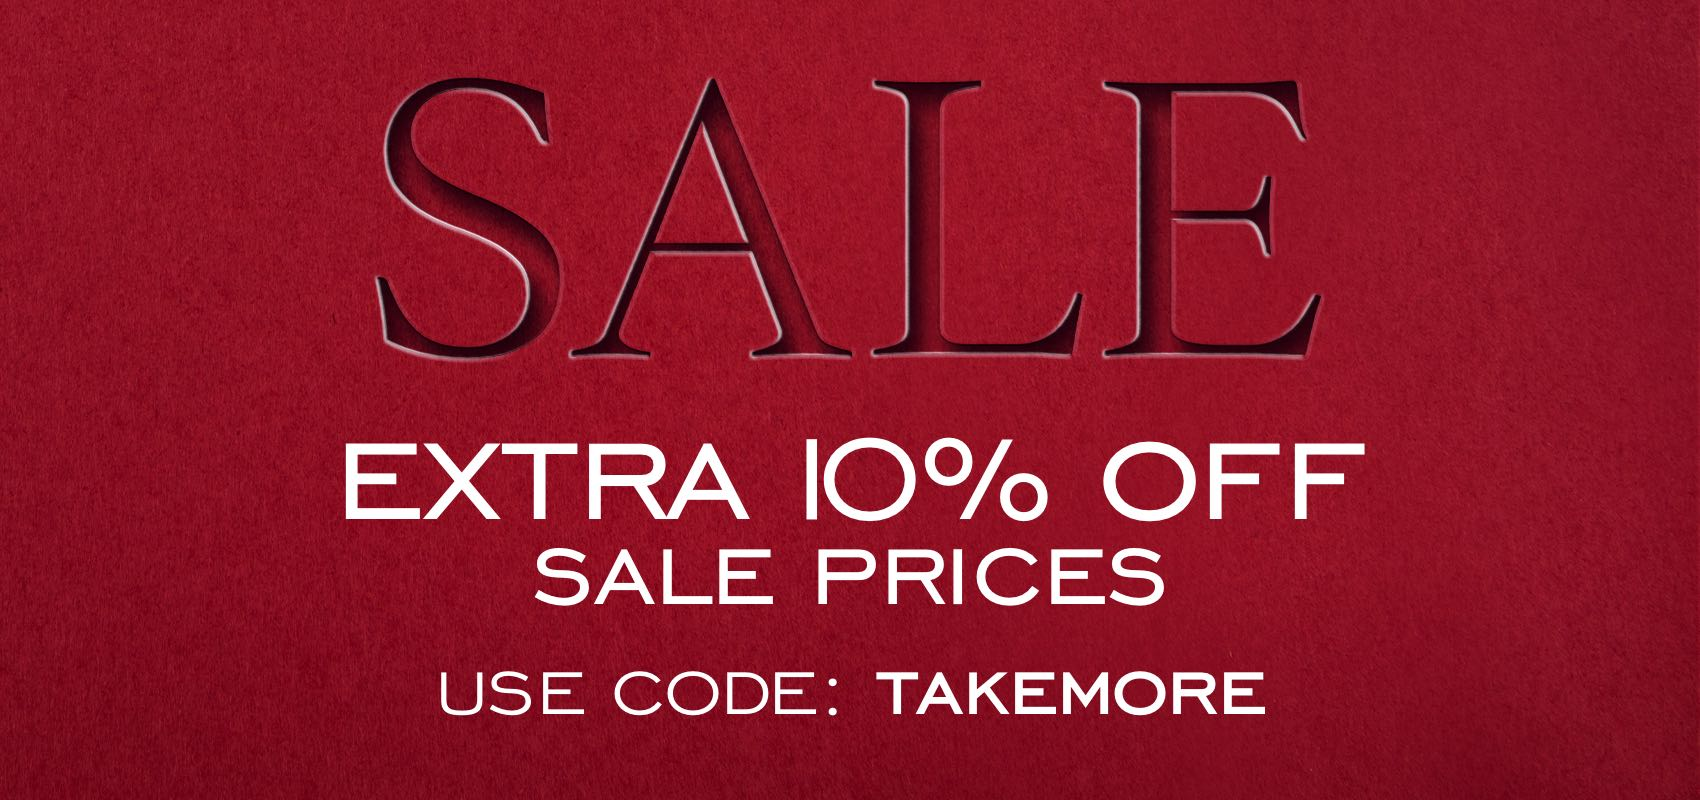 Sale extra 10% off sale prices use code TAKEMORE